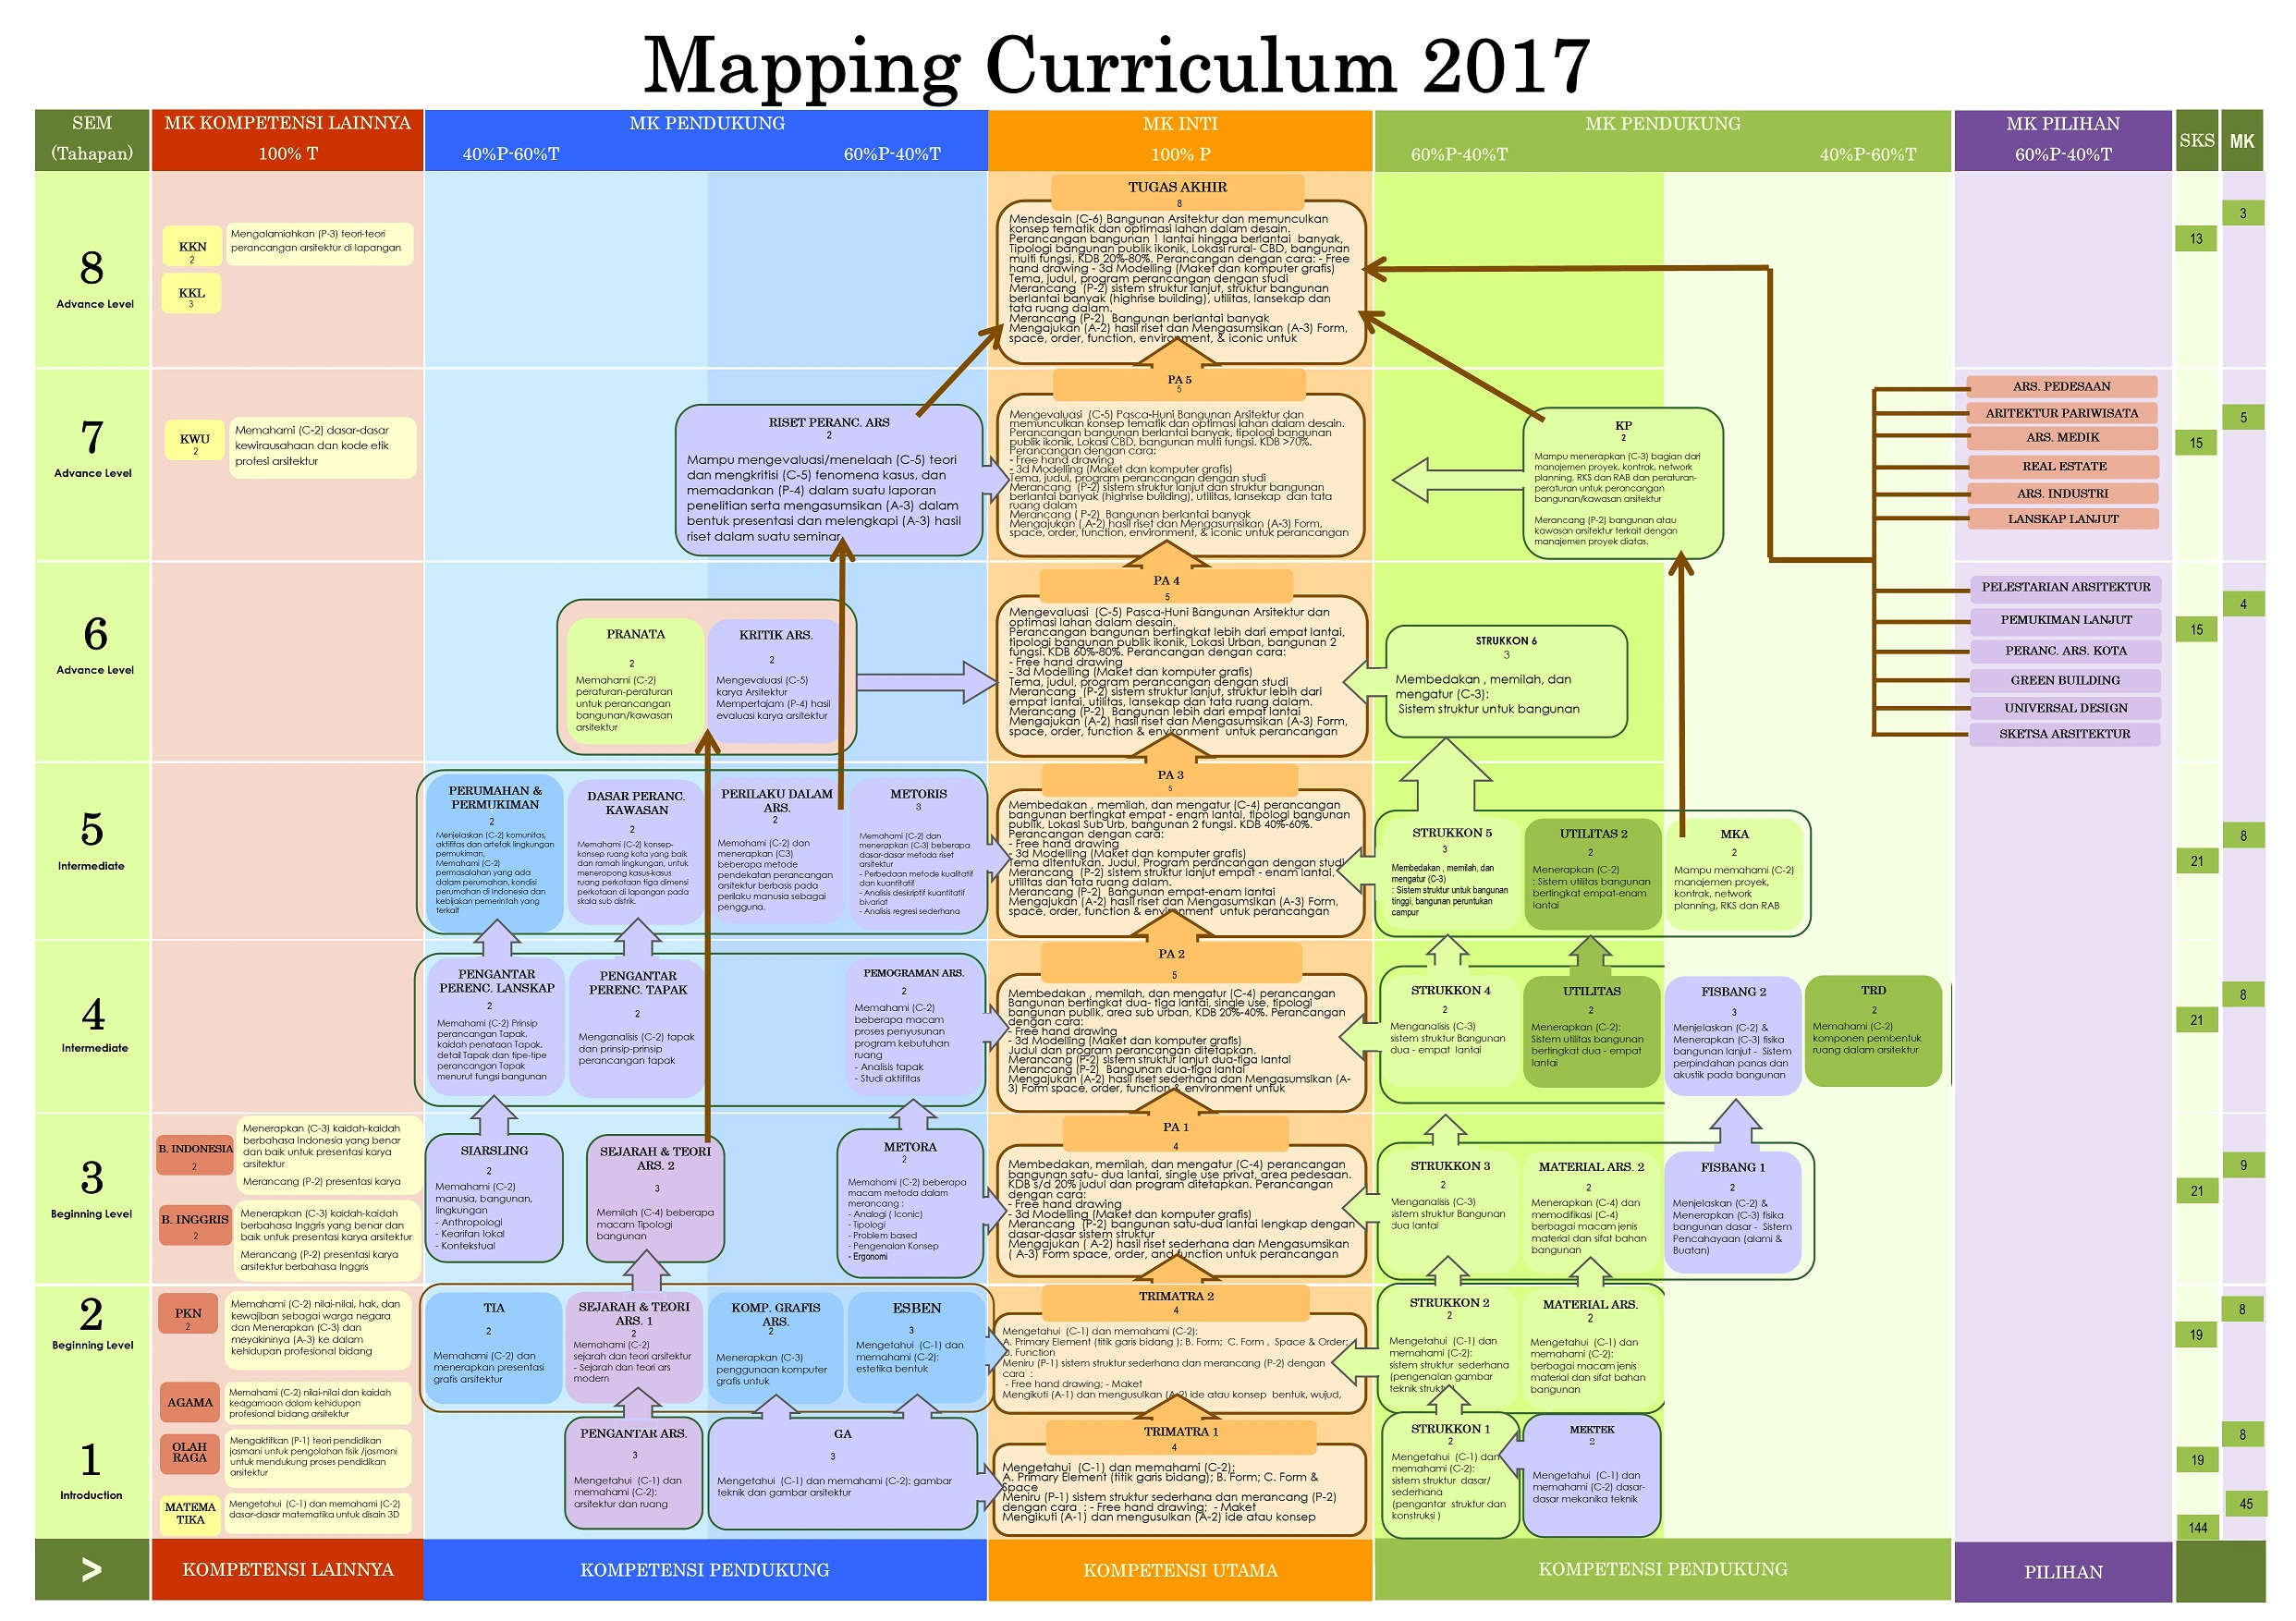 MAPPING CURICULUM 2017